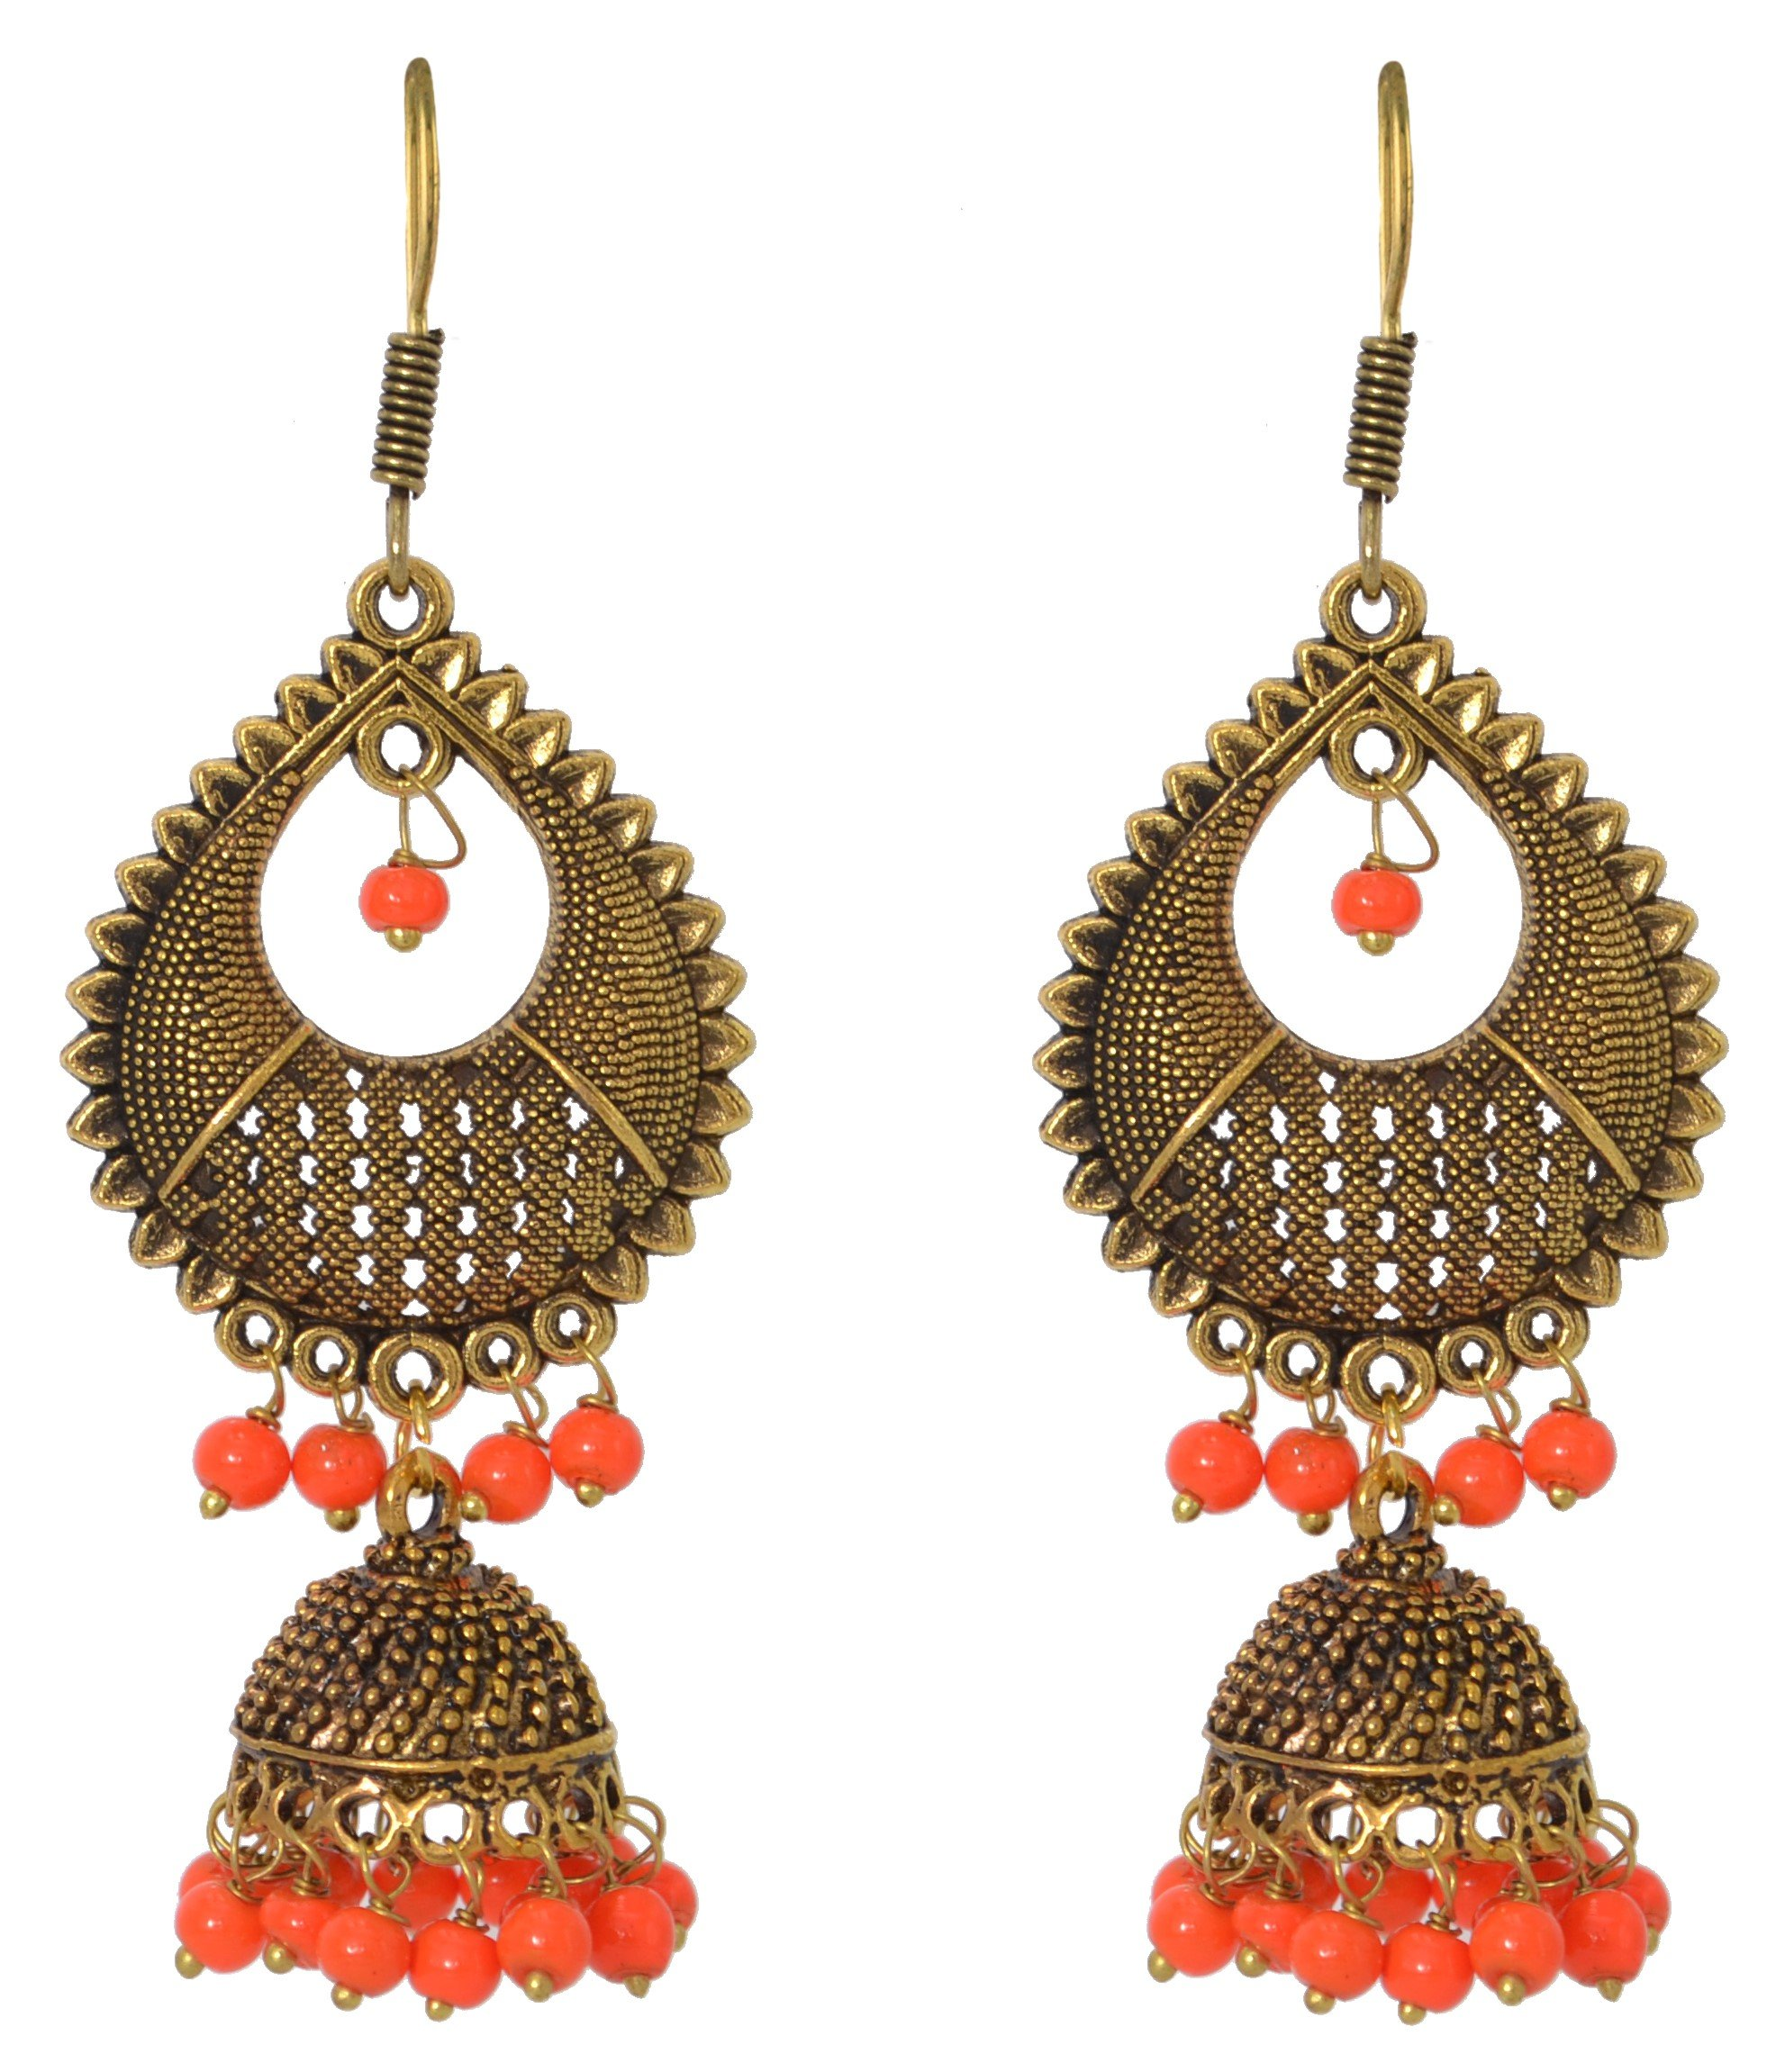 Sansar India Oxidized Beaded Jhumka Indian Earrings Jewelry for Girls and Women